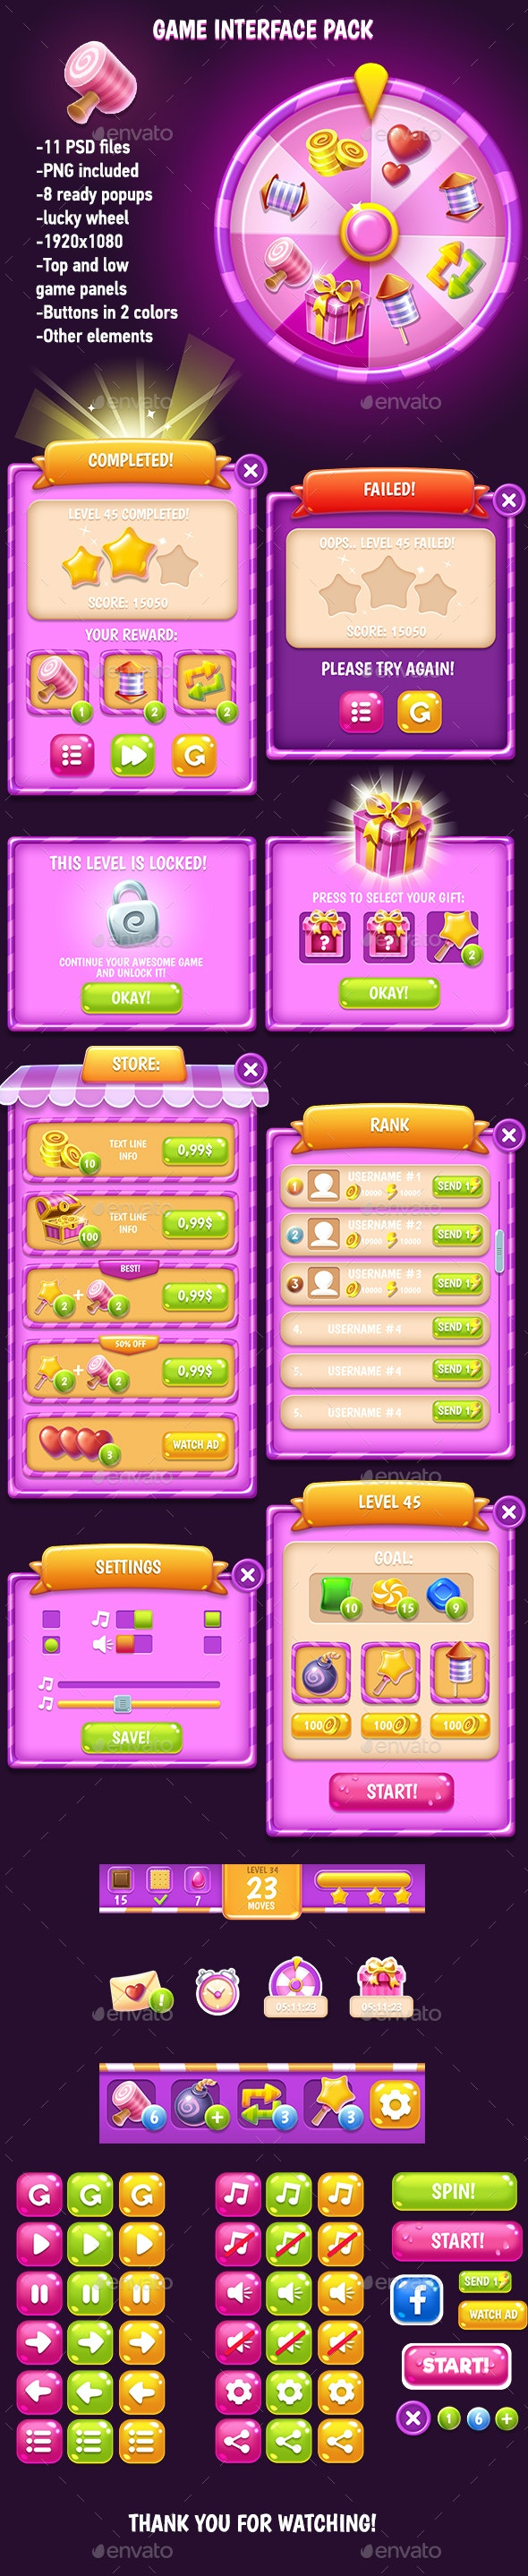 Pink Glossy Game Interface Pack